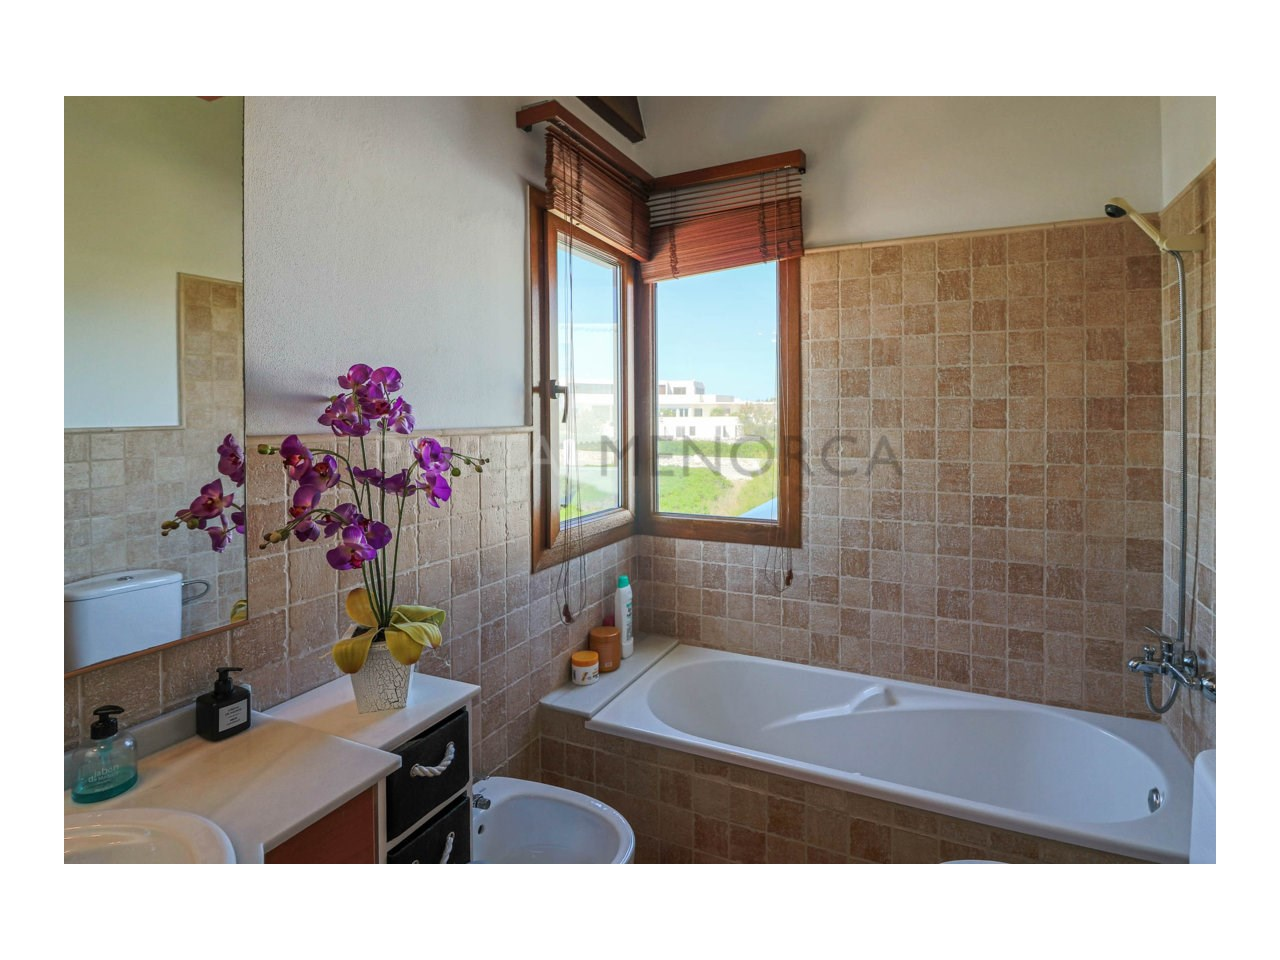 Villa for sale in Cala Morell with sea views and tourist license-Bathroom